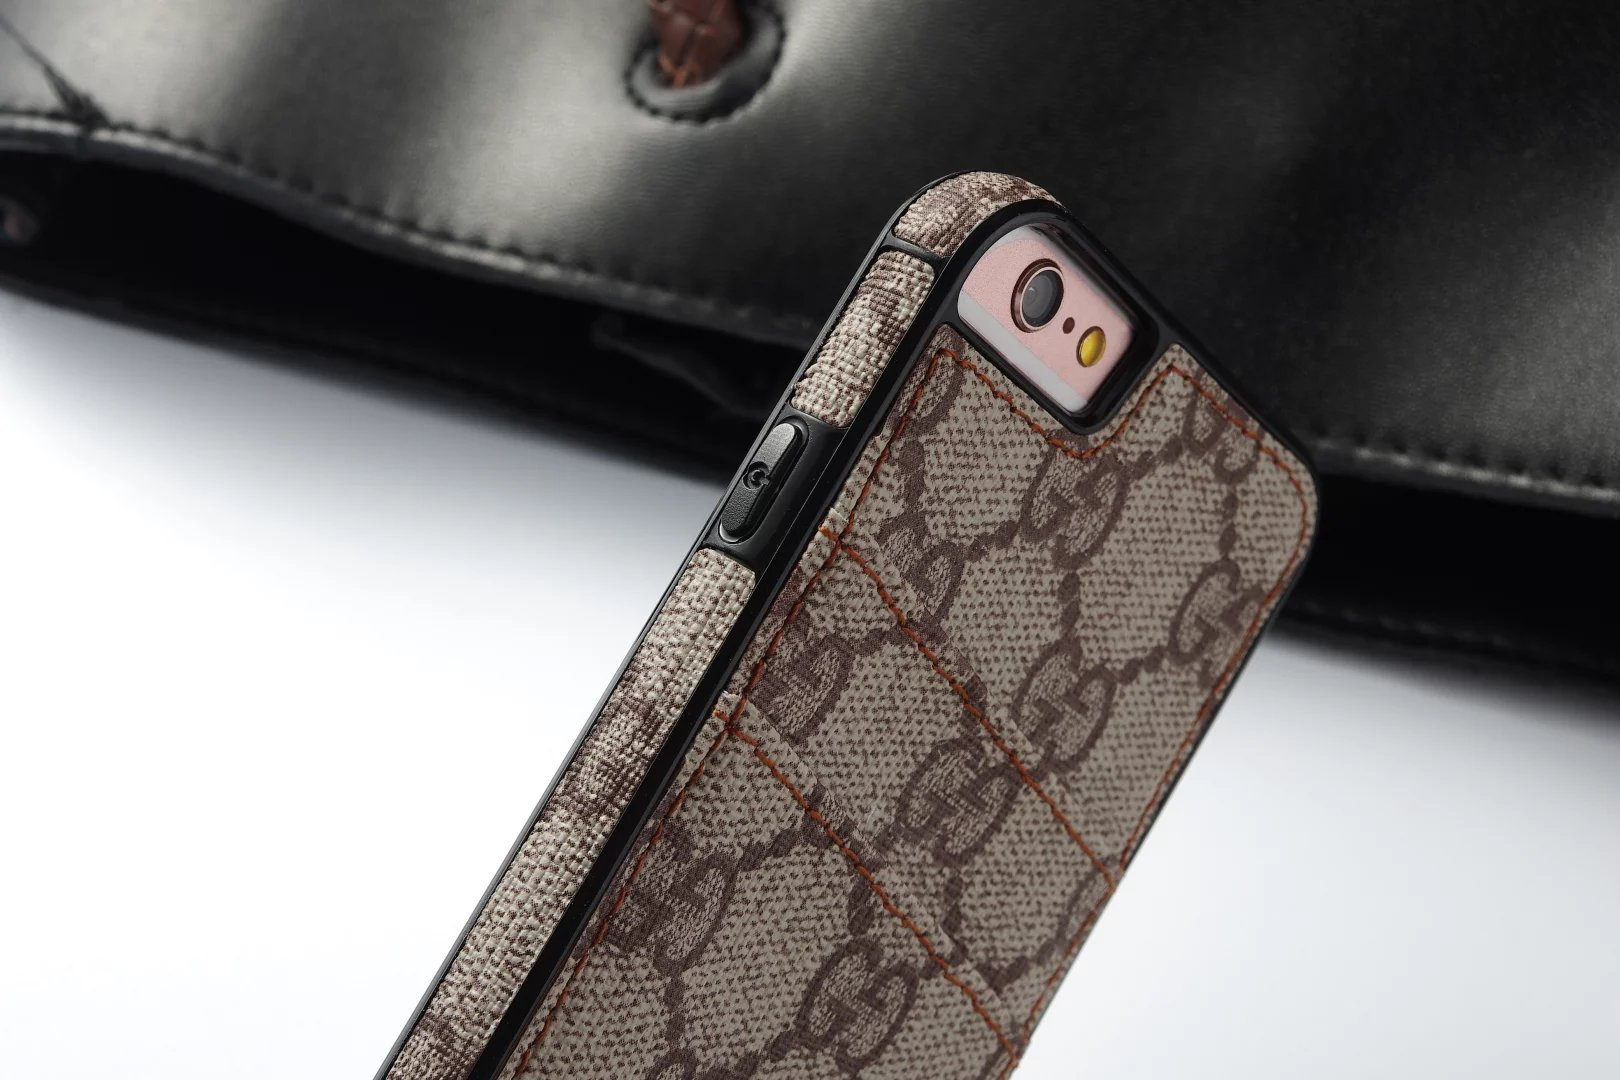 iphone case gestalten iphone hülle bedrucken Louis Vuitton iphone7 hülle handyhülle 7lbst gestalten günstig apple lederhülle iphone 6 megapixel kamera iphone 7 hülle galaxy leder cover iphone 7 iphone 7 ilikon hülle